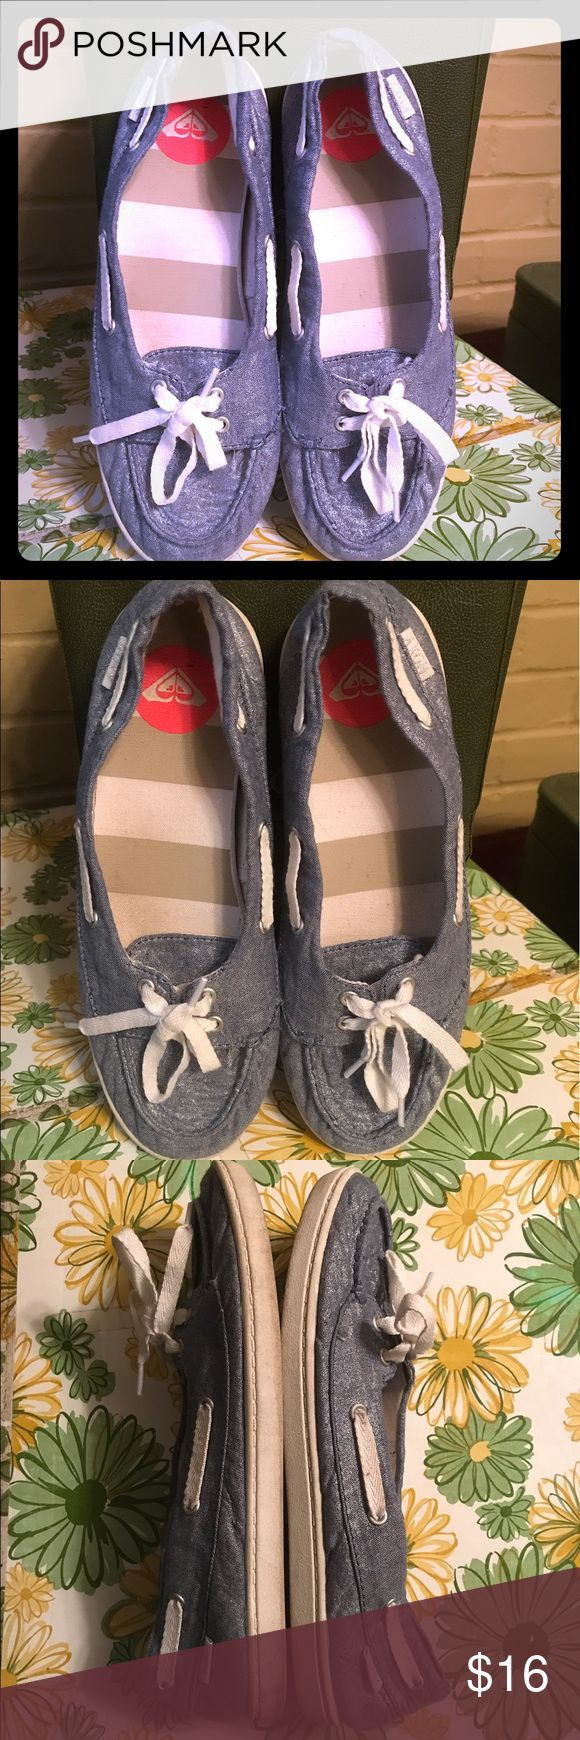 Adorable Roxy Ahoy Sparkle Blue Boat Shoes These are in good, preowned condition. There is obvious wear to the bottoms, as well as some wear to the bottom sides. The color is similar to jeans with a slight sparkle. Super cute! Roxy Shoes Flats & Loafers